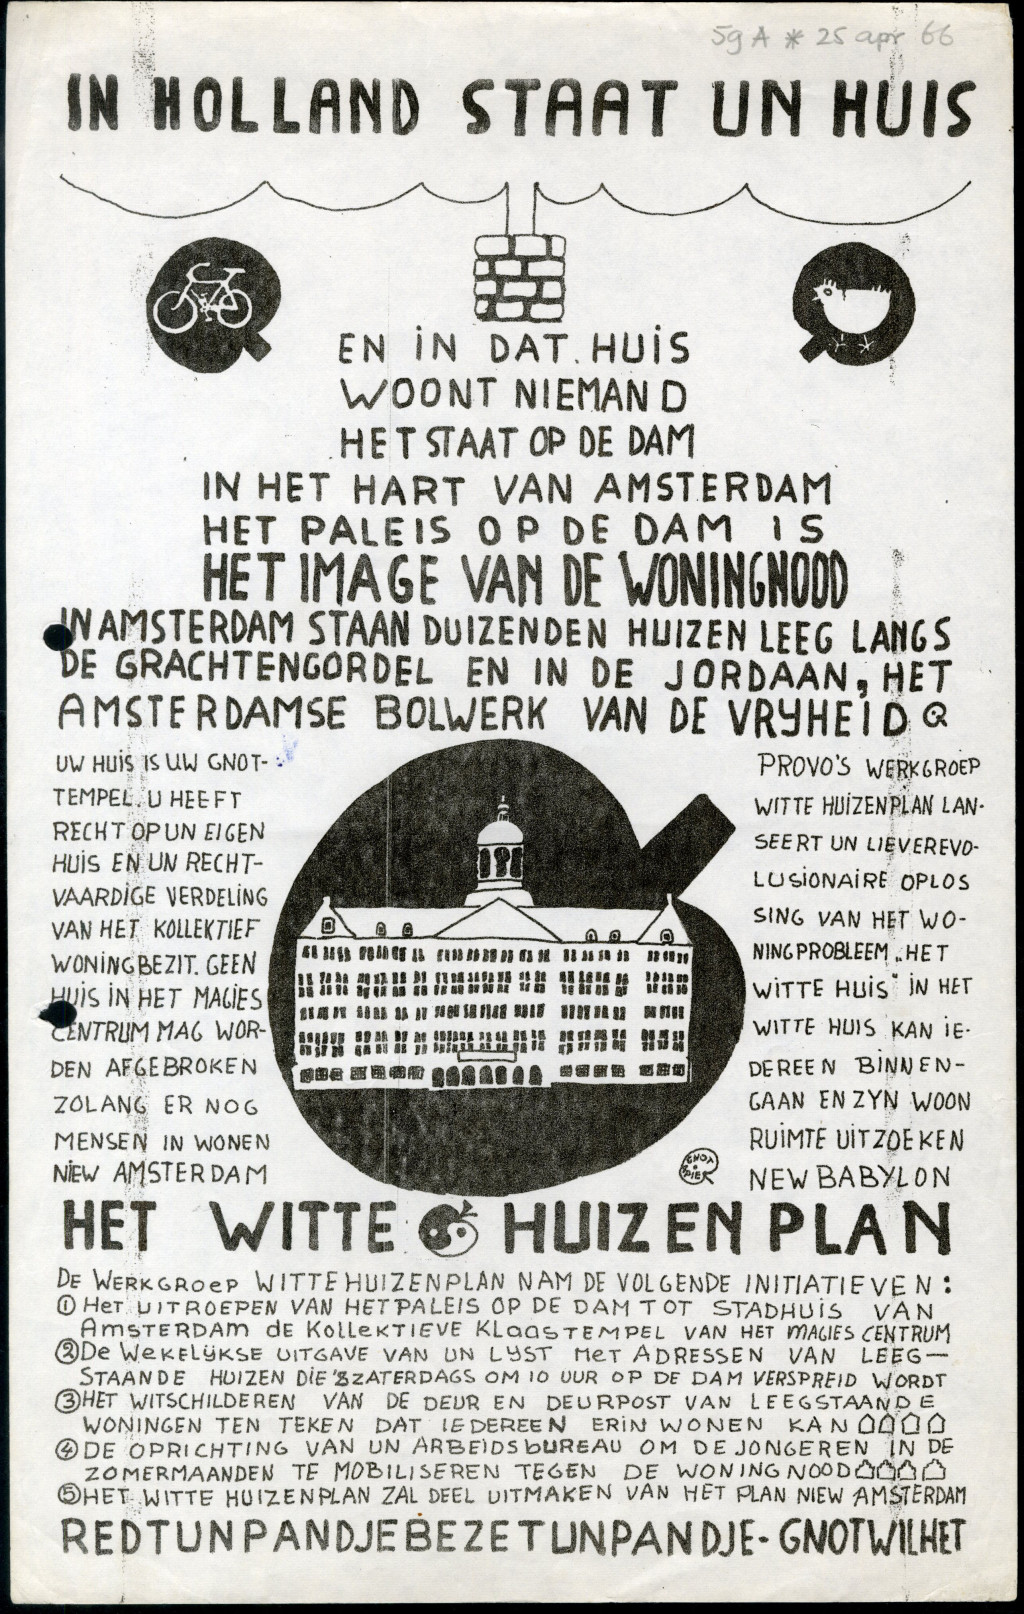 Witte Huizenplan (White Dwellings Plan), pamphlet, 1966, Provo, Collection International Institute of Social History (IISG)